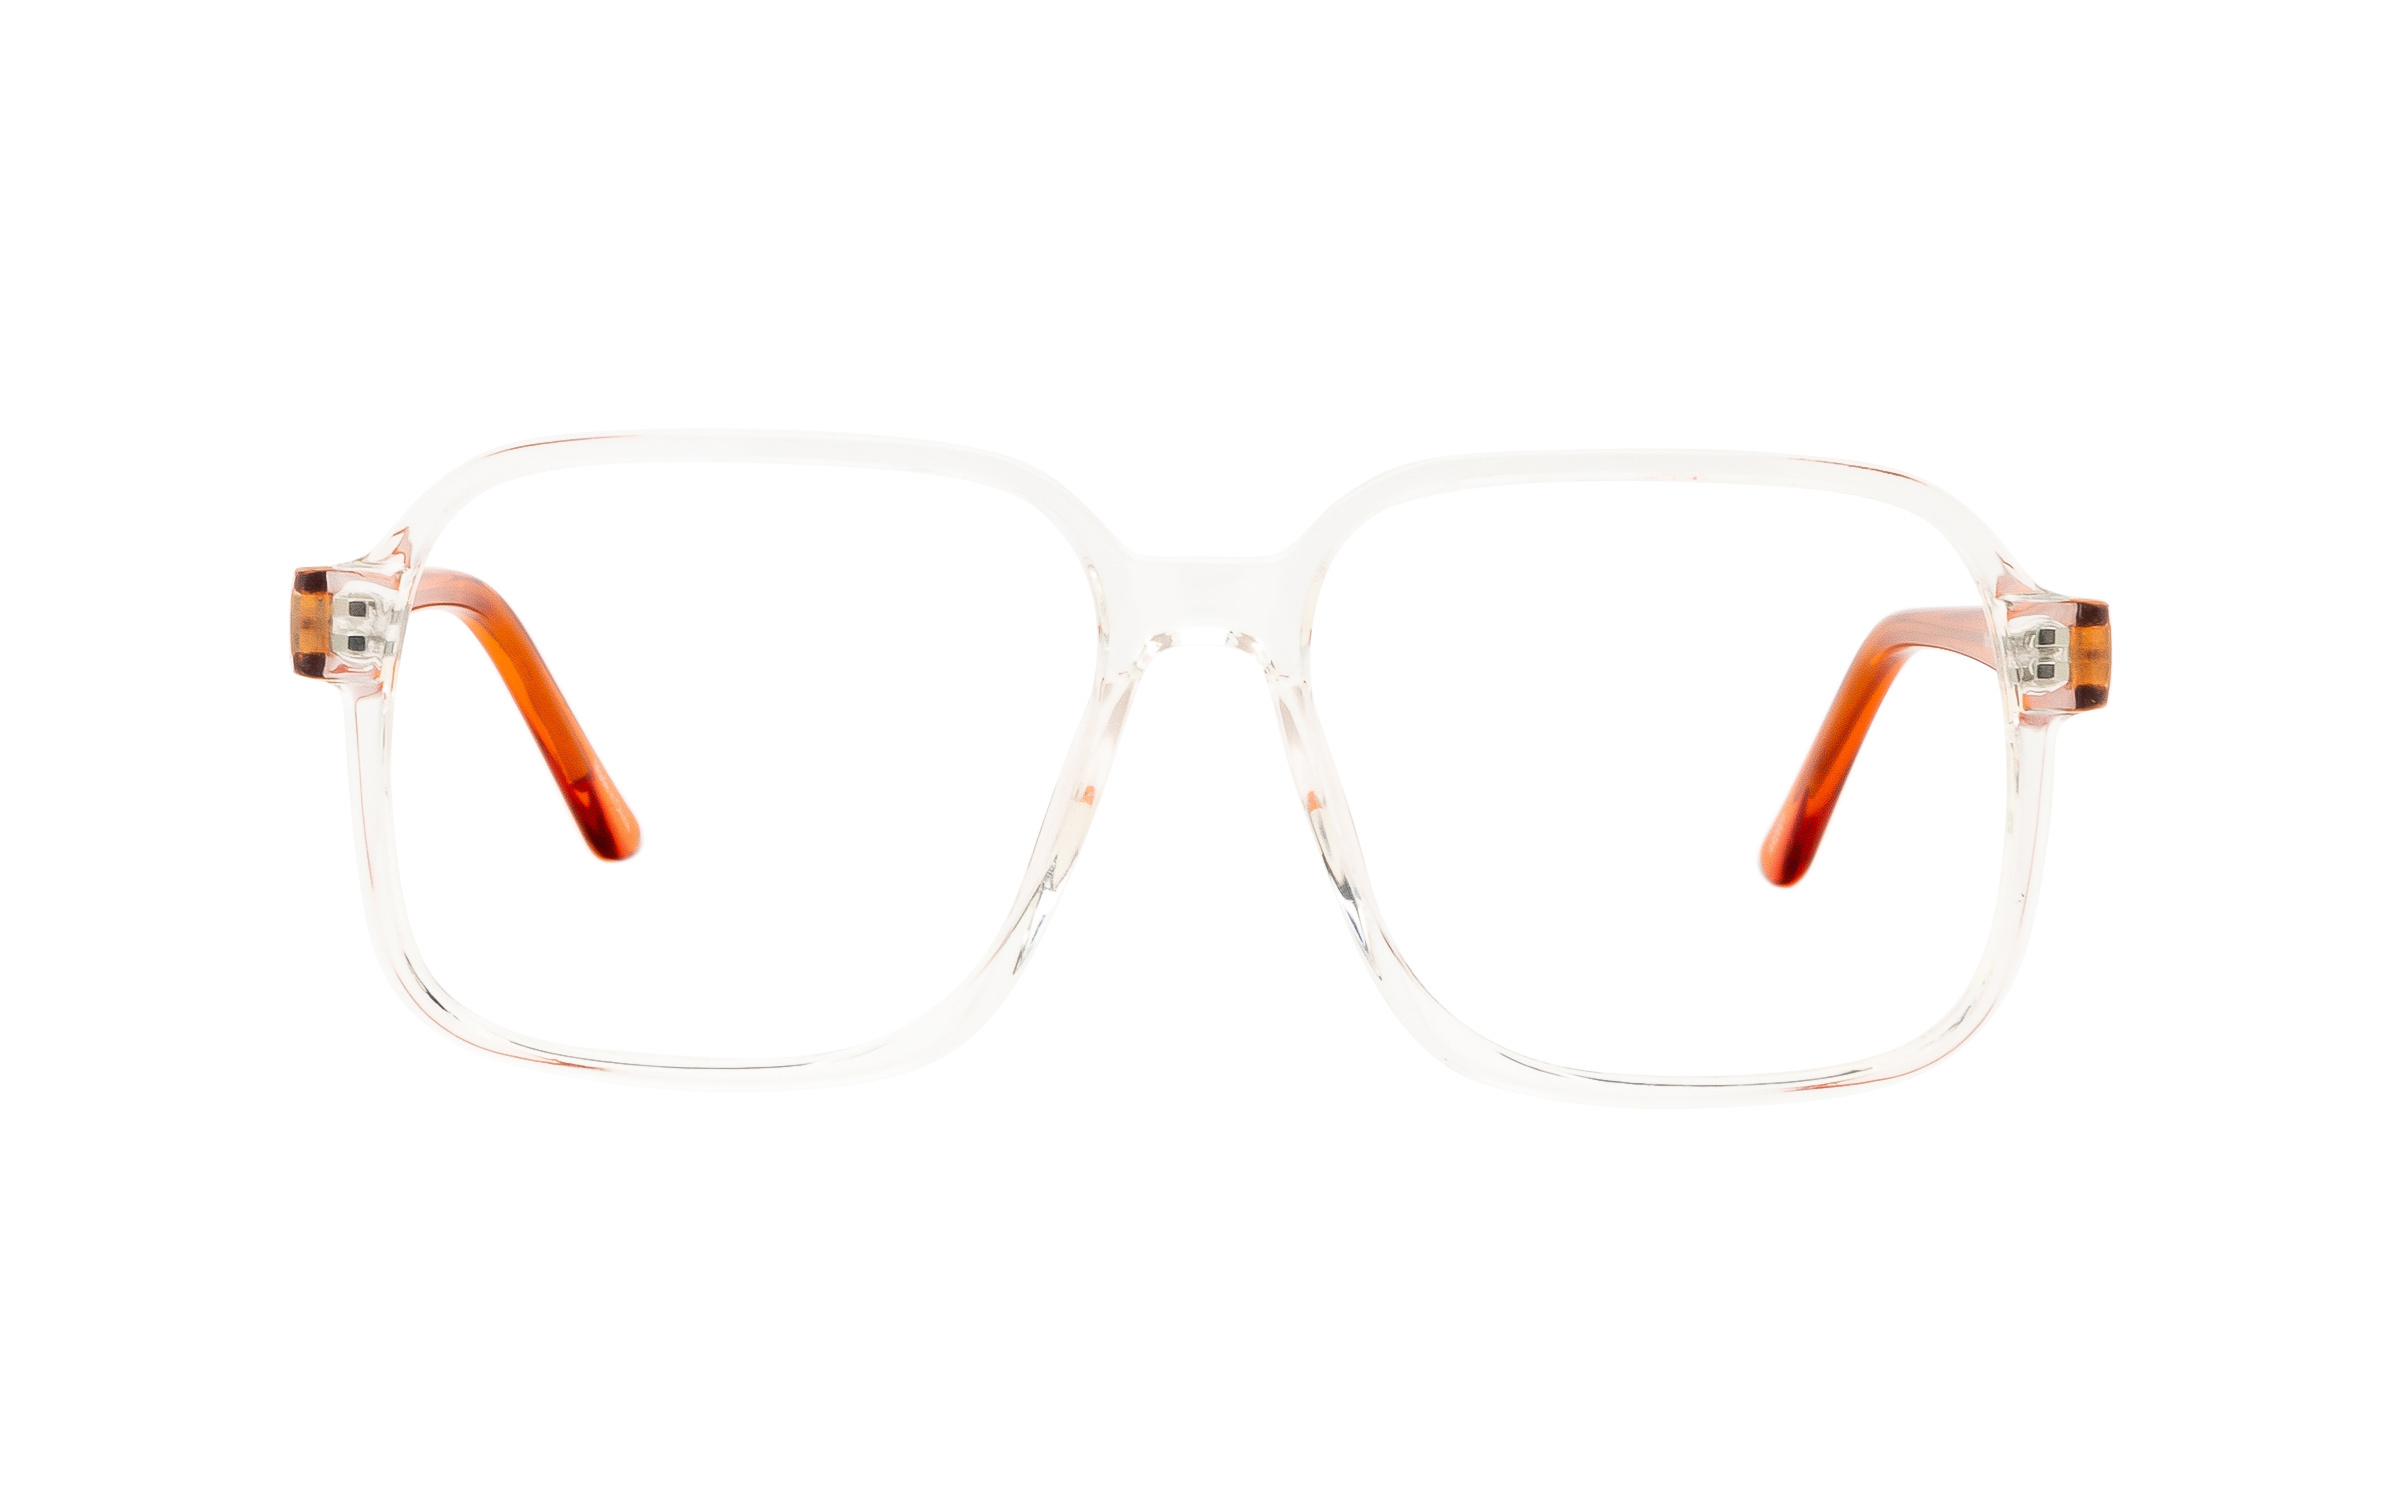 http://www.coastal.com/ - ly Basics Mahone Bay CLS052 C04 (54) Eyeglasses and Frame in Clear – Online Coastal